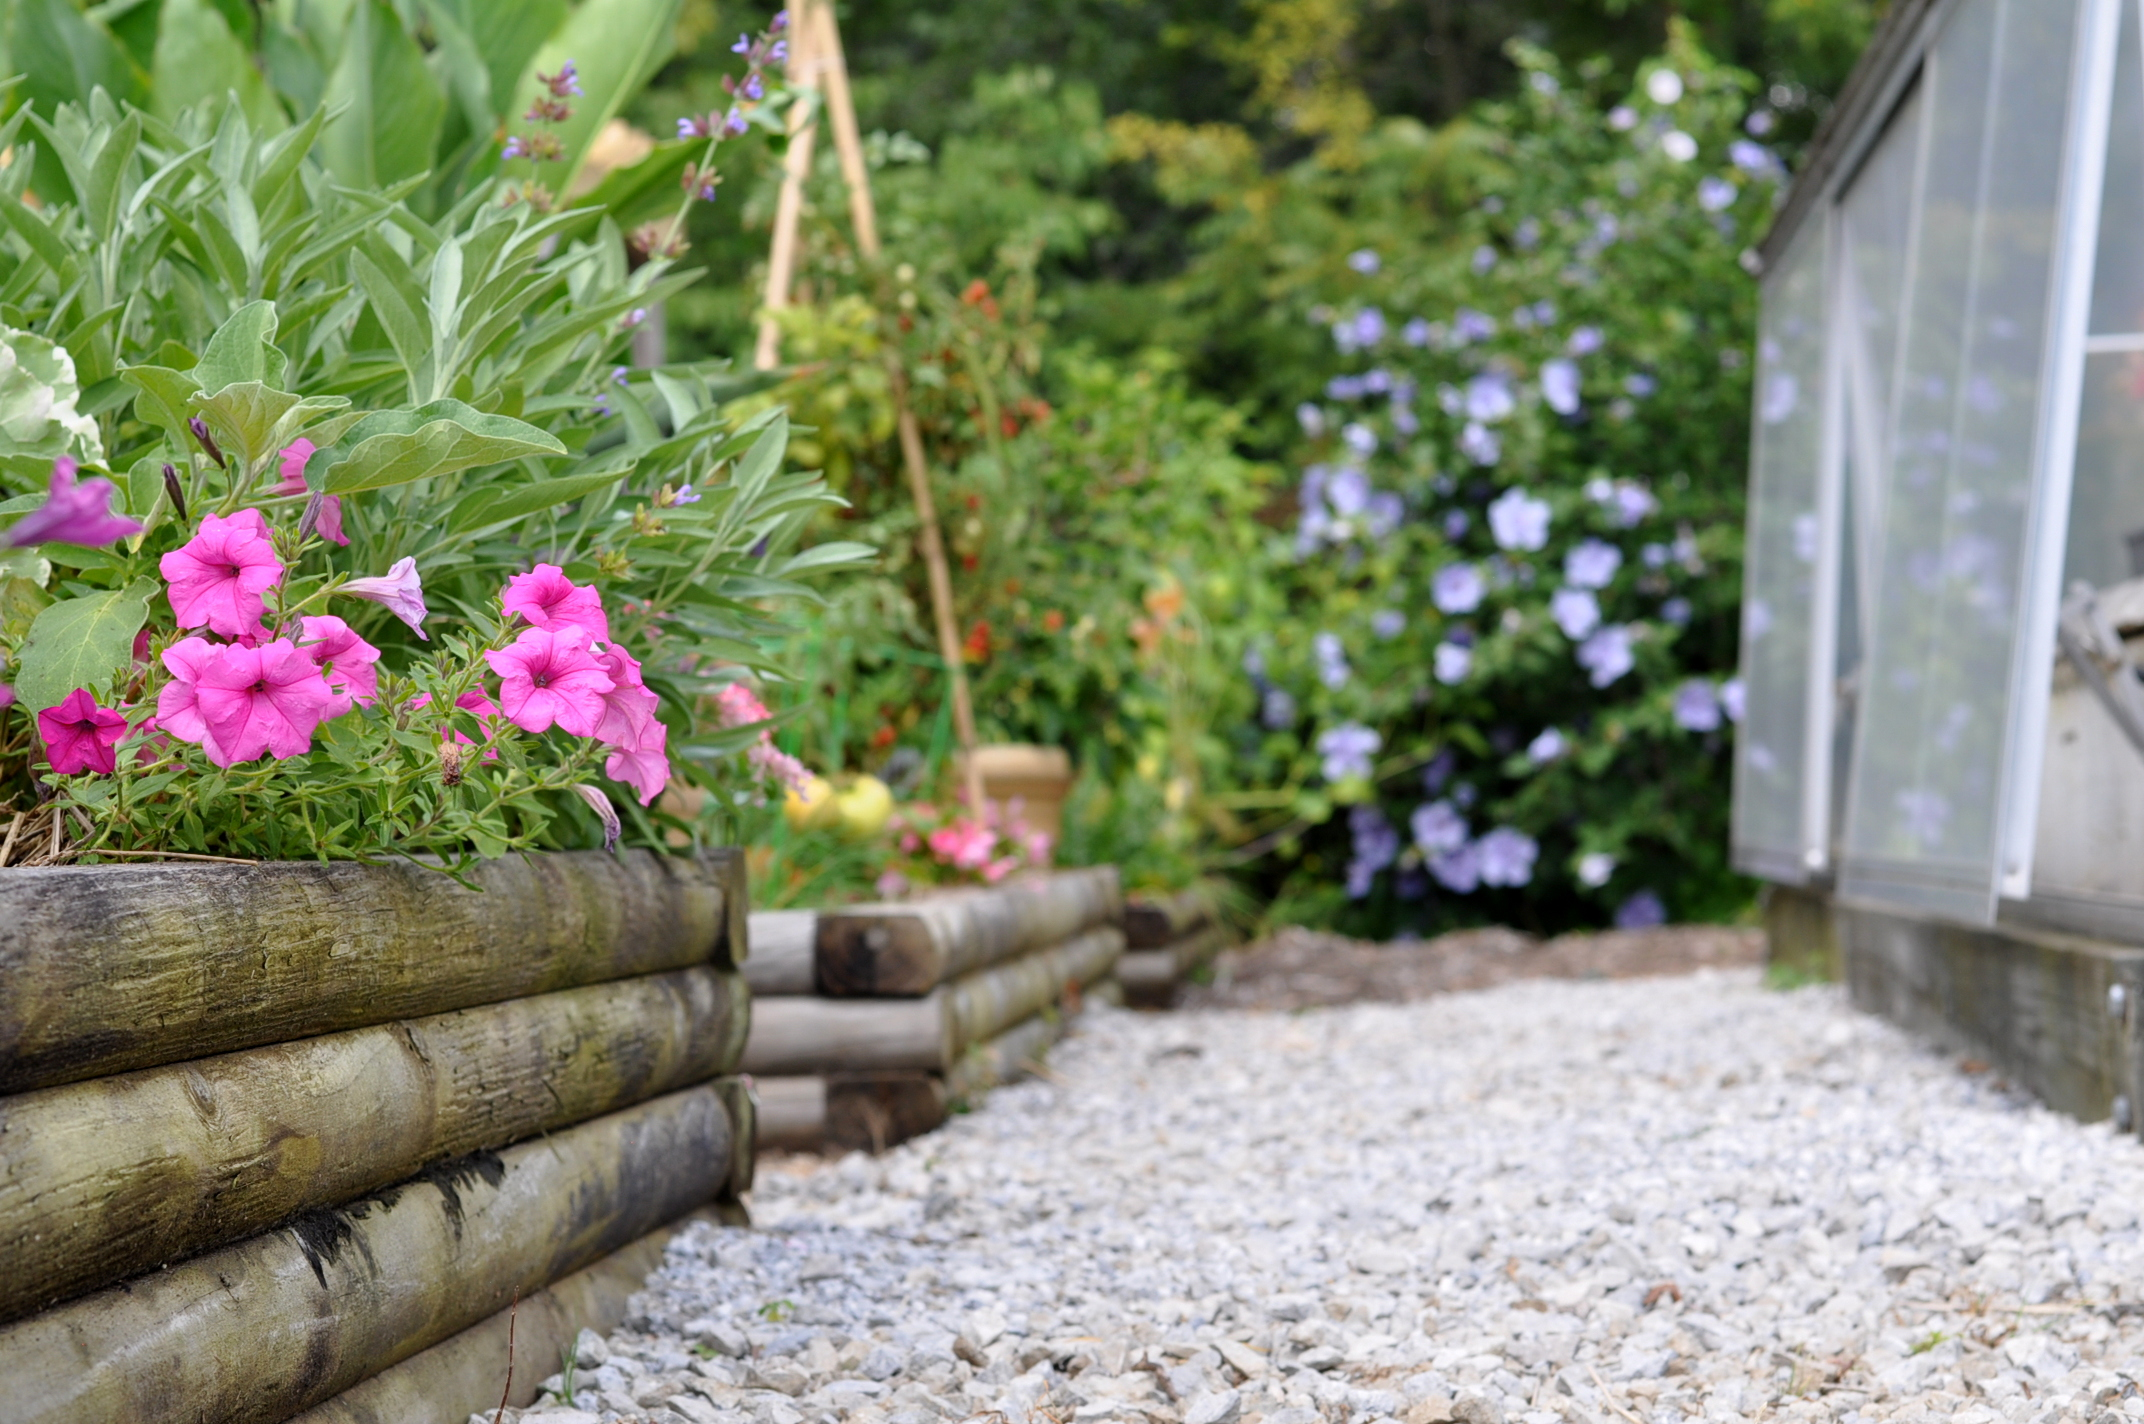 How To Enhance Your Garden With Gravel on Patio And Gravel Garden Ideas id=24317